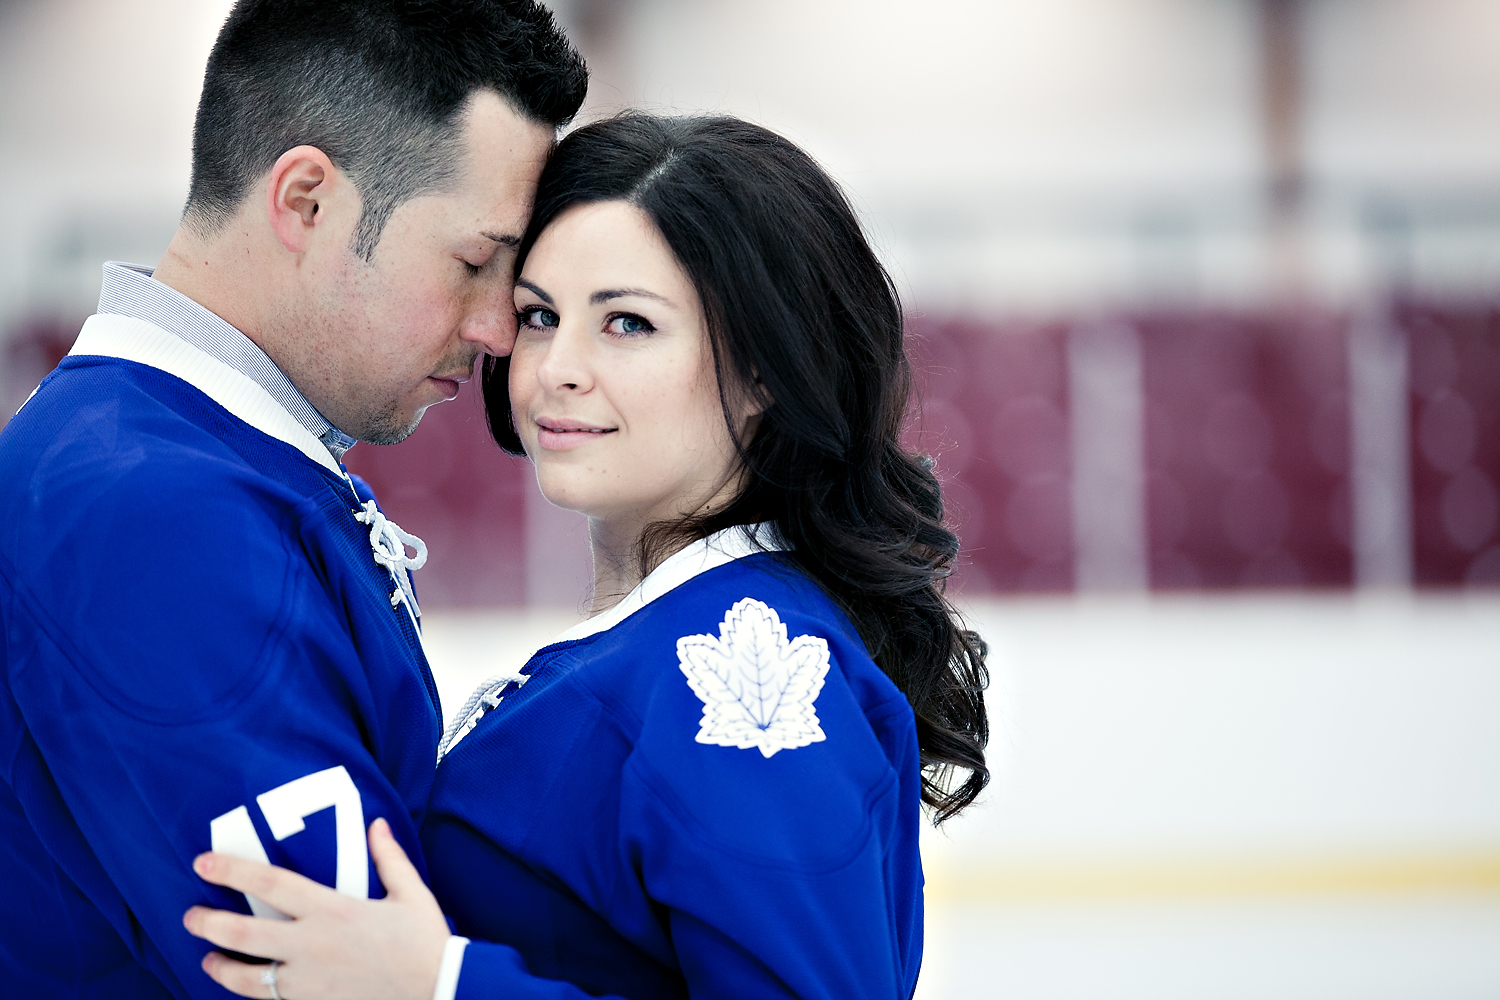 Toronto Wedding Photographer Cute Leafs Engagement